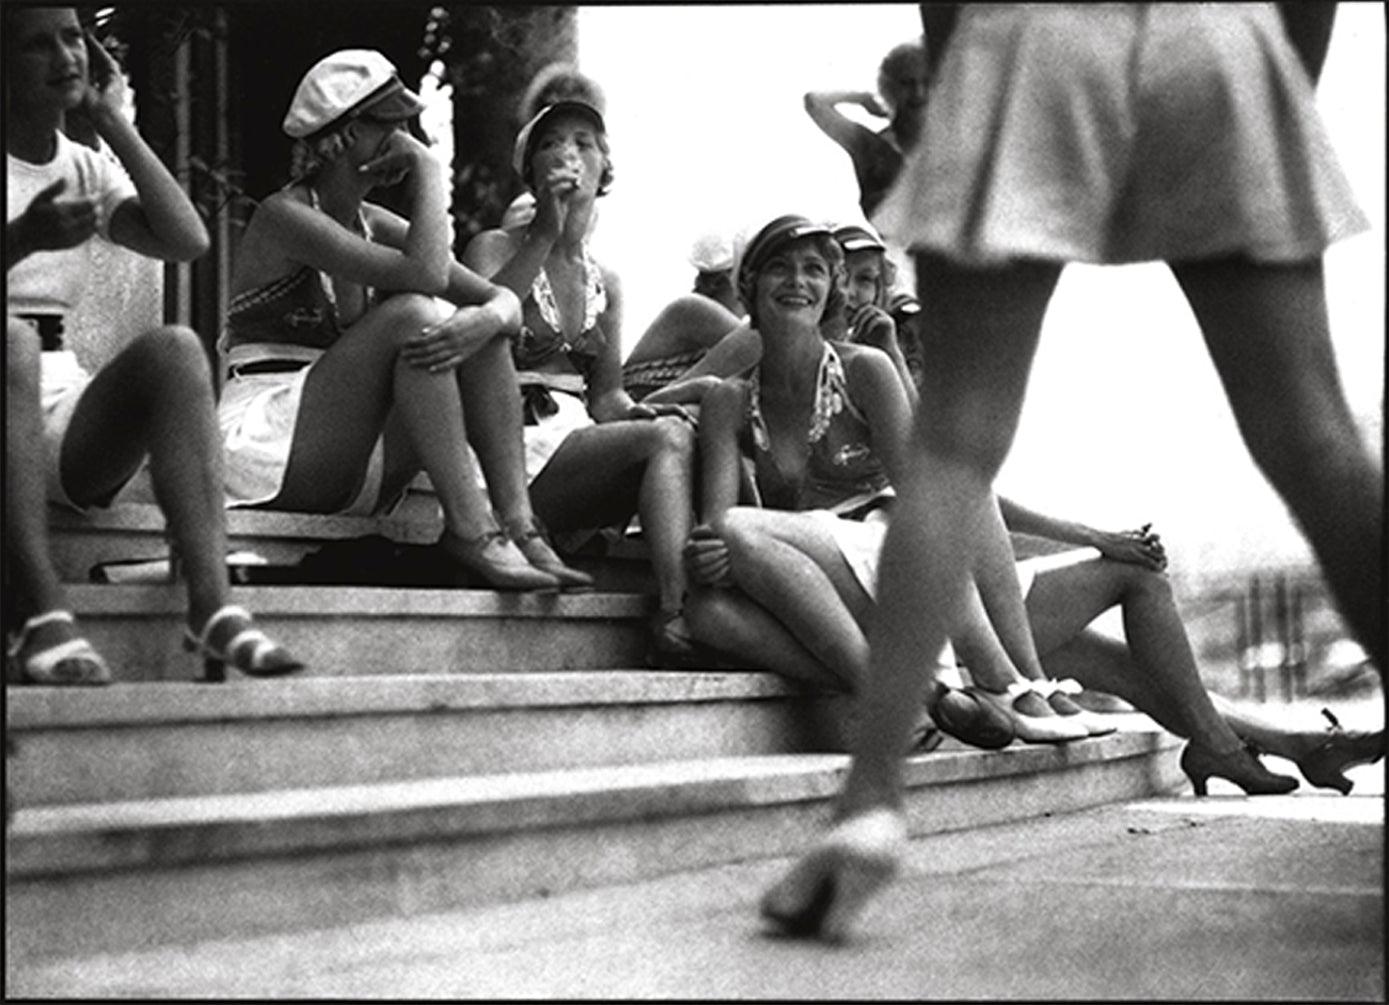 Jacques-Henri Lartigue crown on the stairs